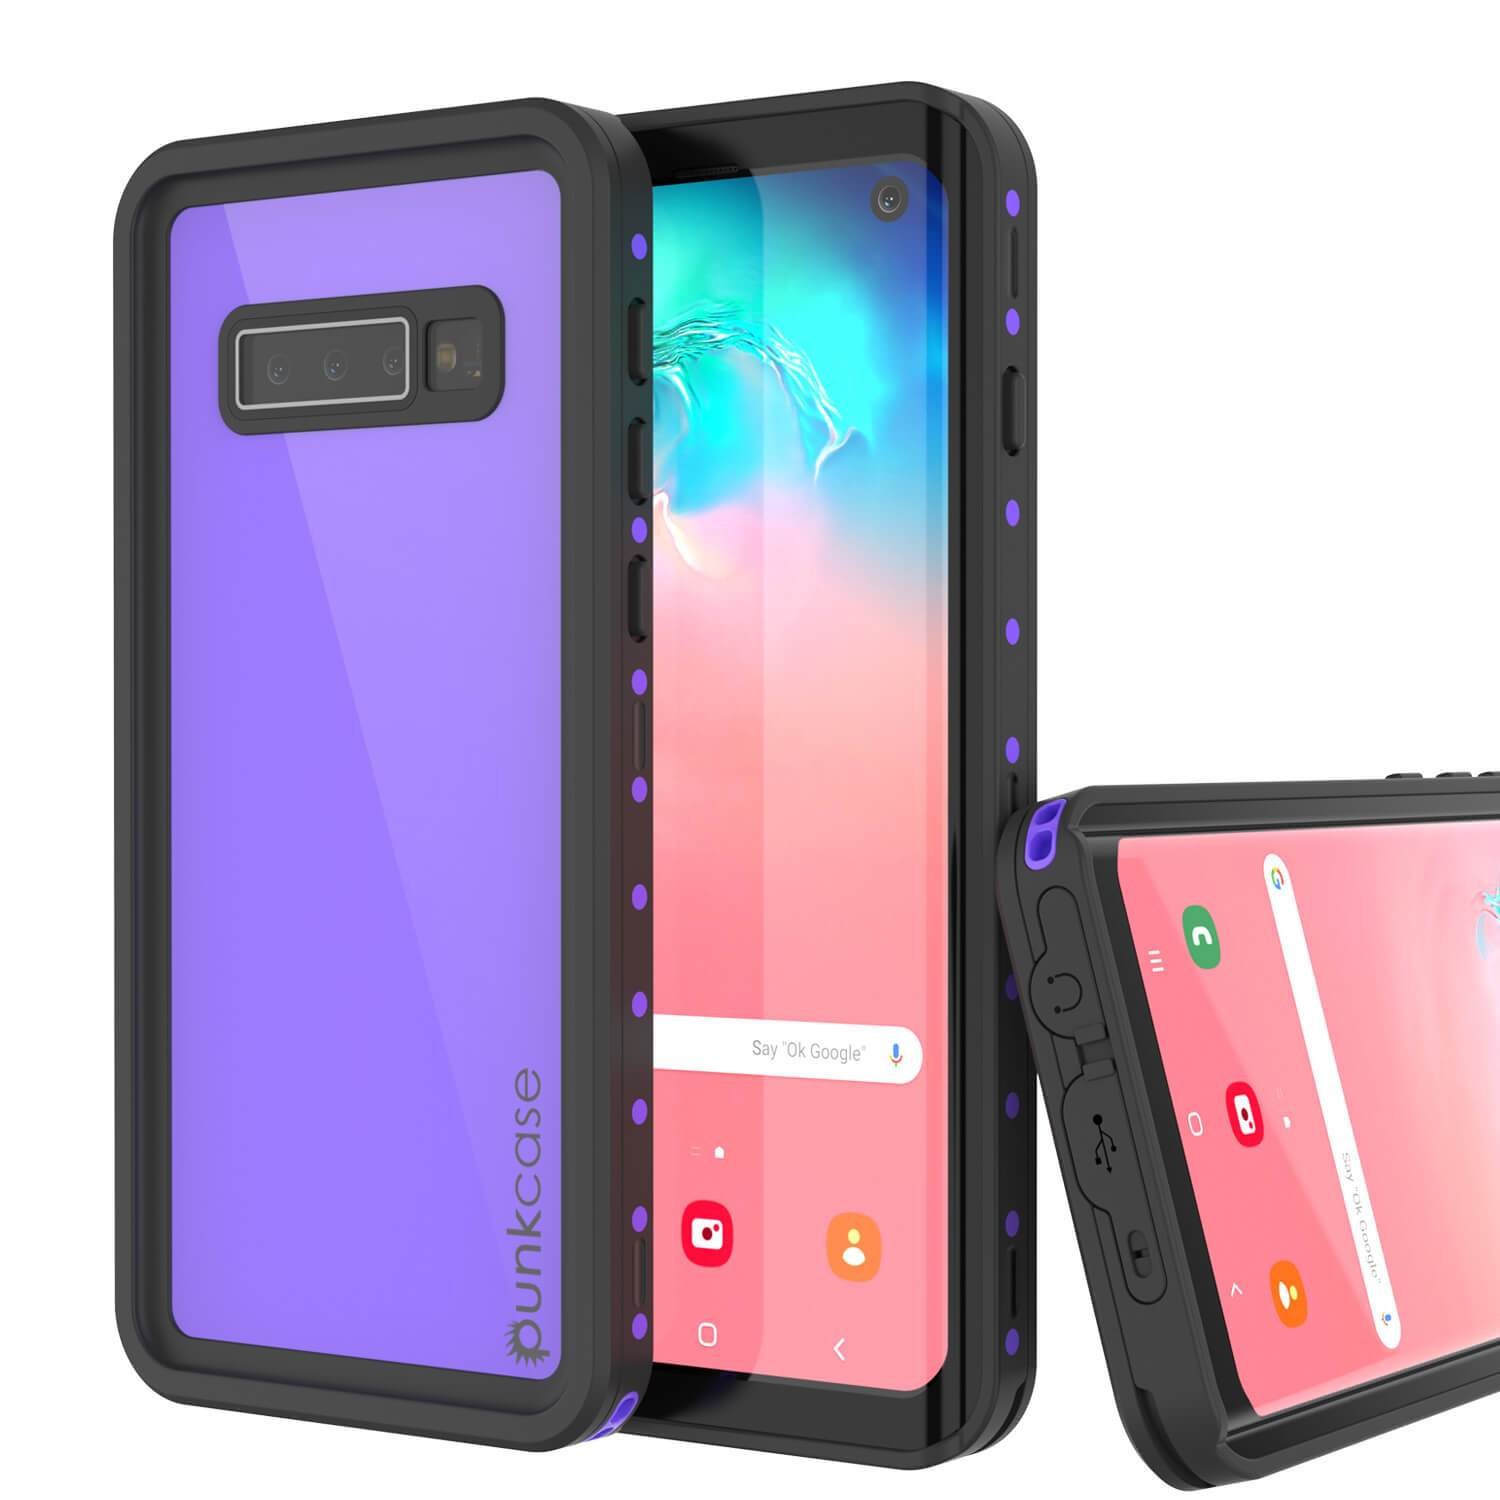 Galaxy S10 Waterproof Case PunkCase StudStar Purple Thin 6.6ft Underwater IP68 Shock/Snow Proof